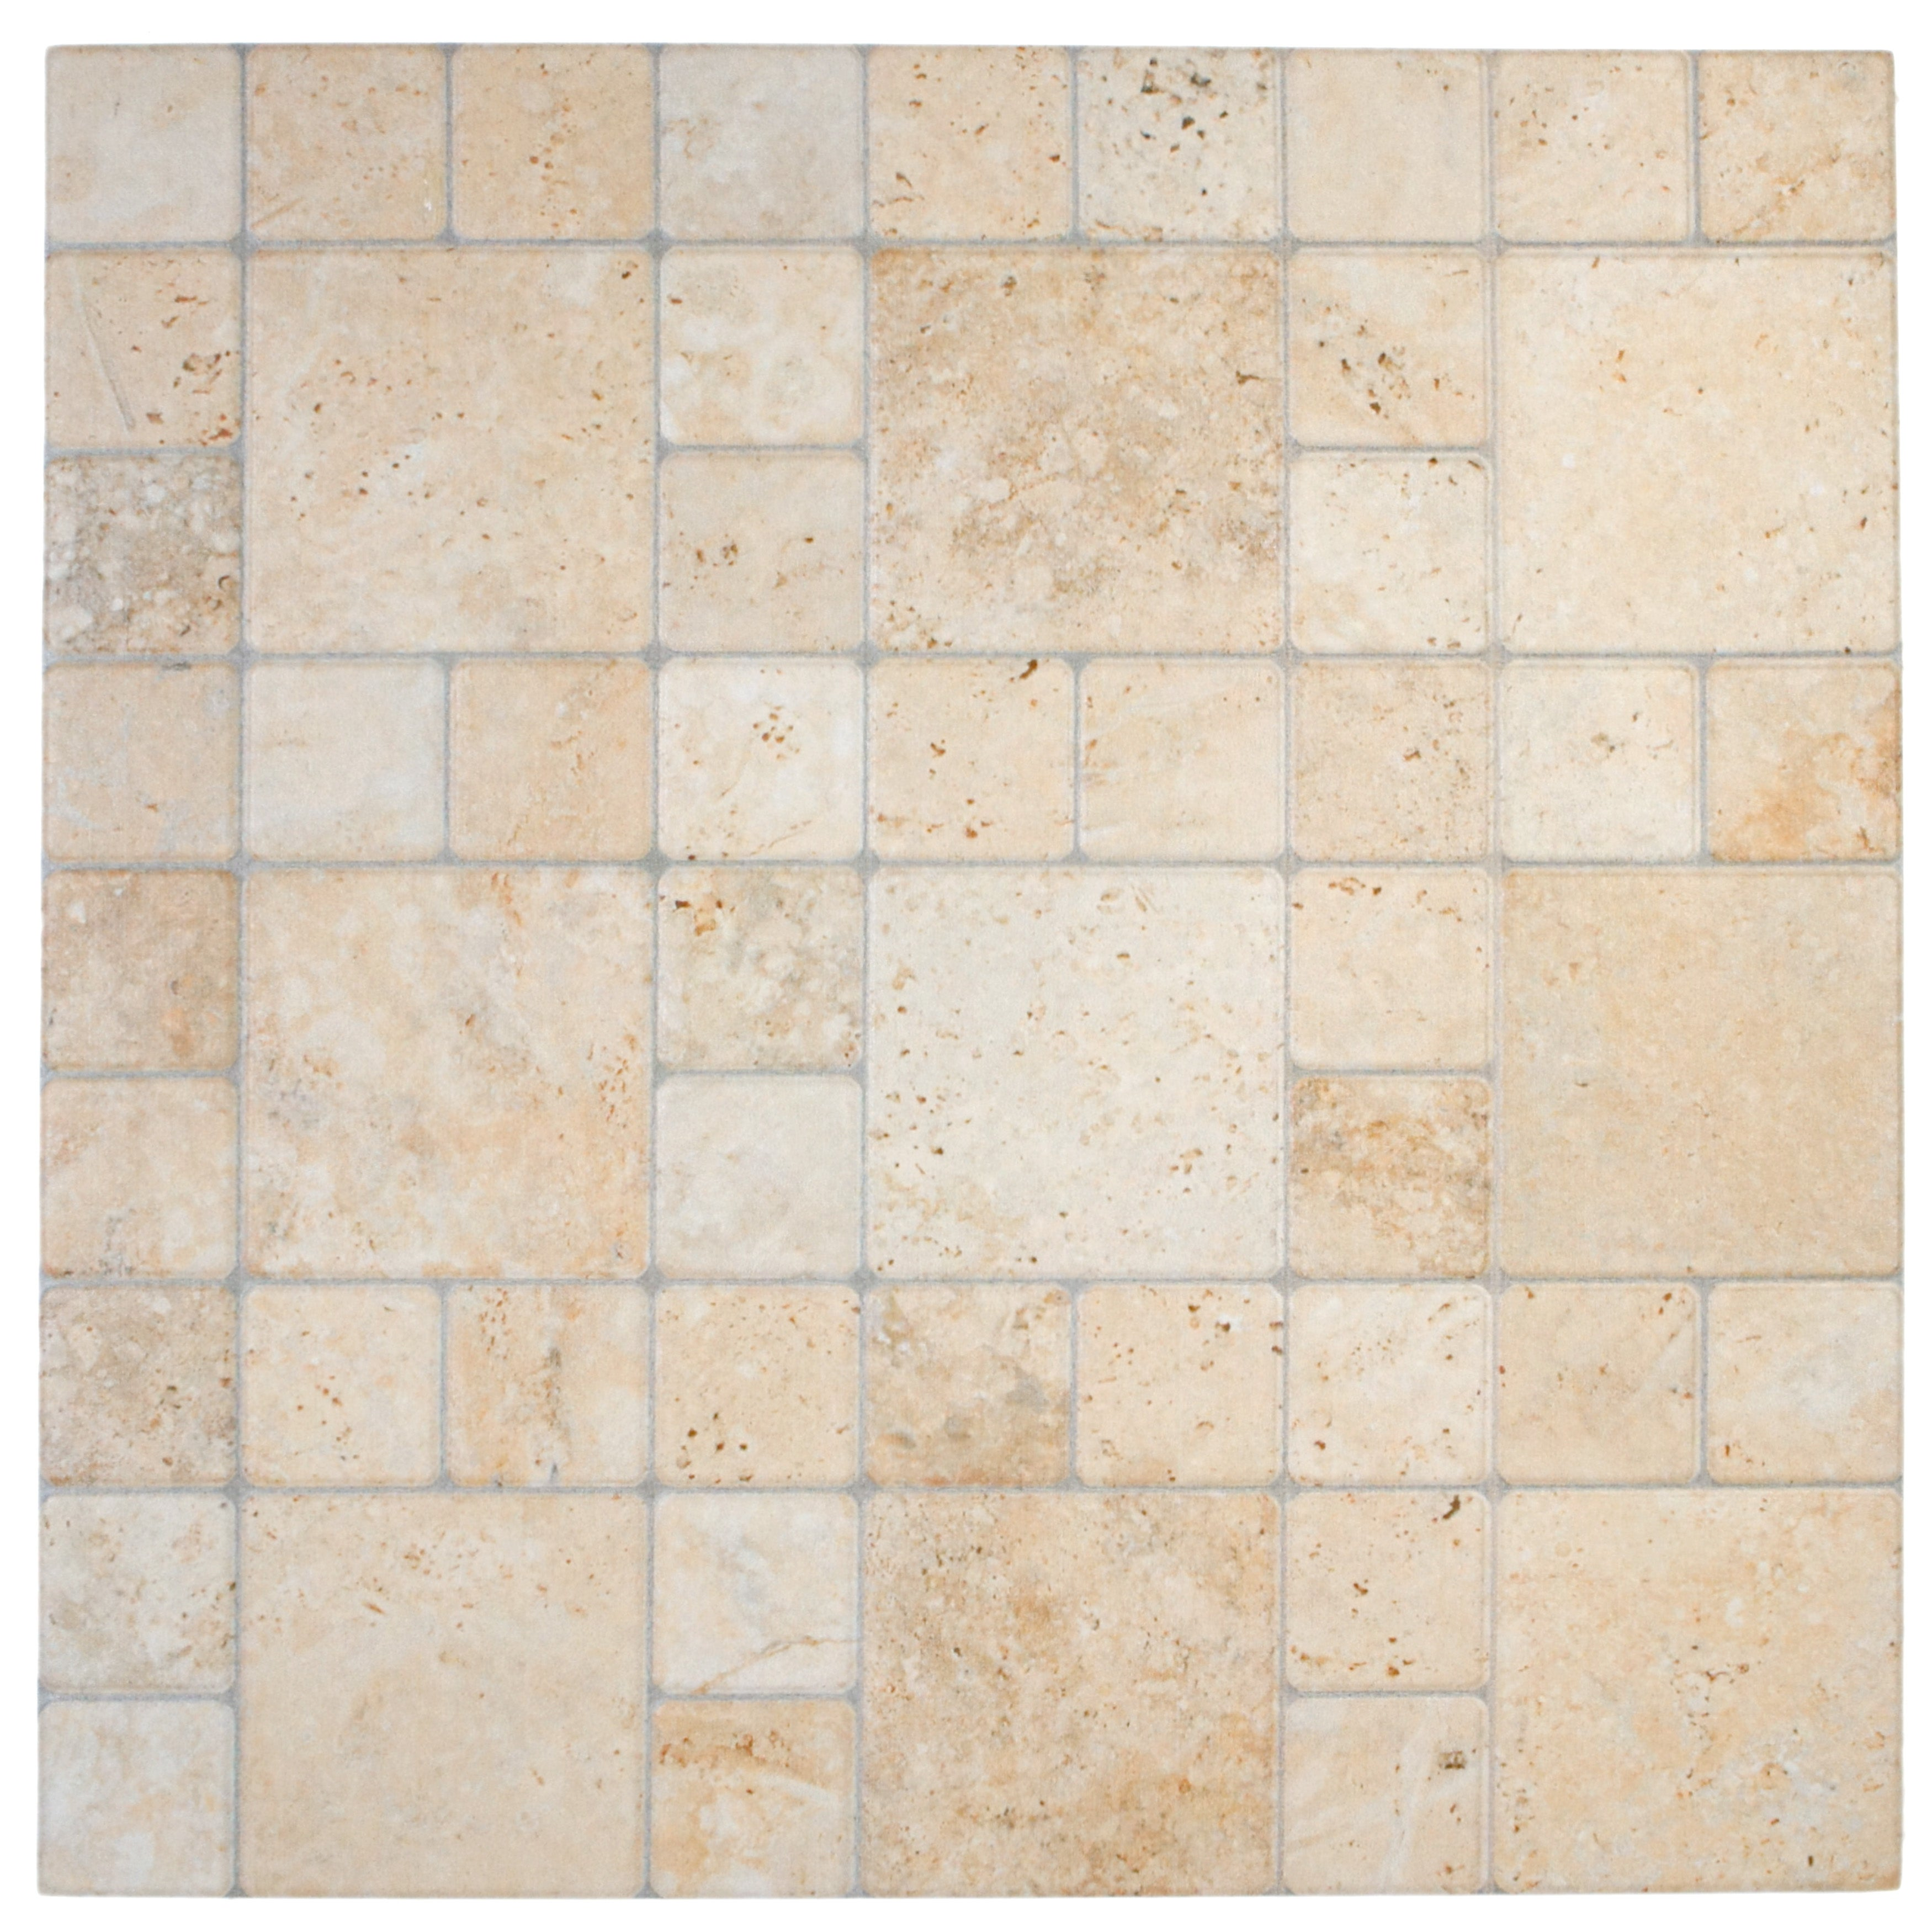 SomerTile 12.25x12.25-inch Folio Por Beige Porcelain Floor and Wall Tile (Case of 15)